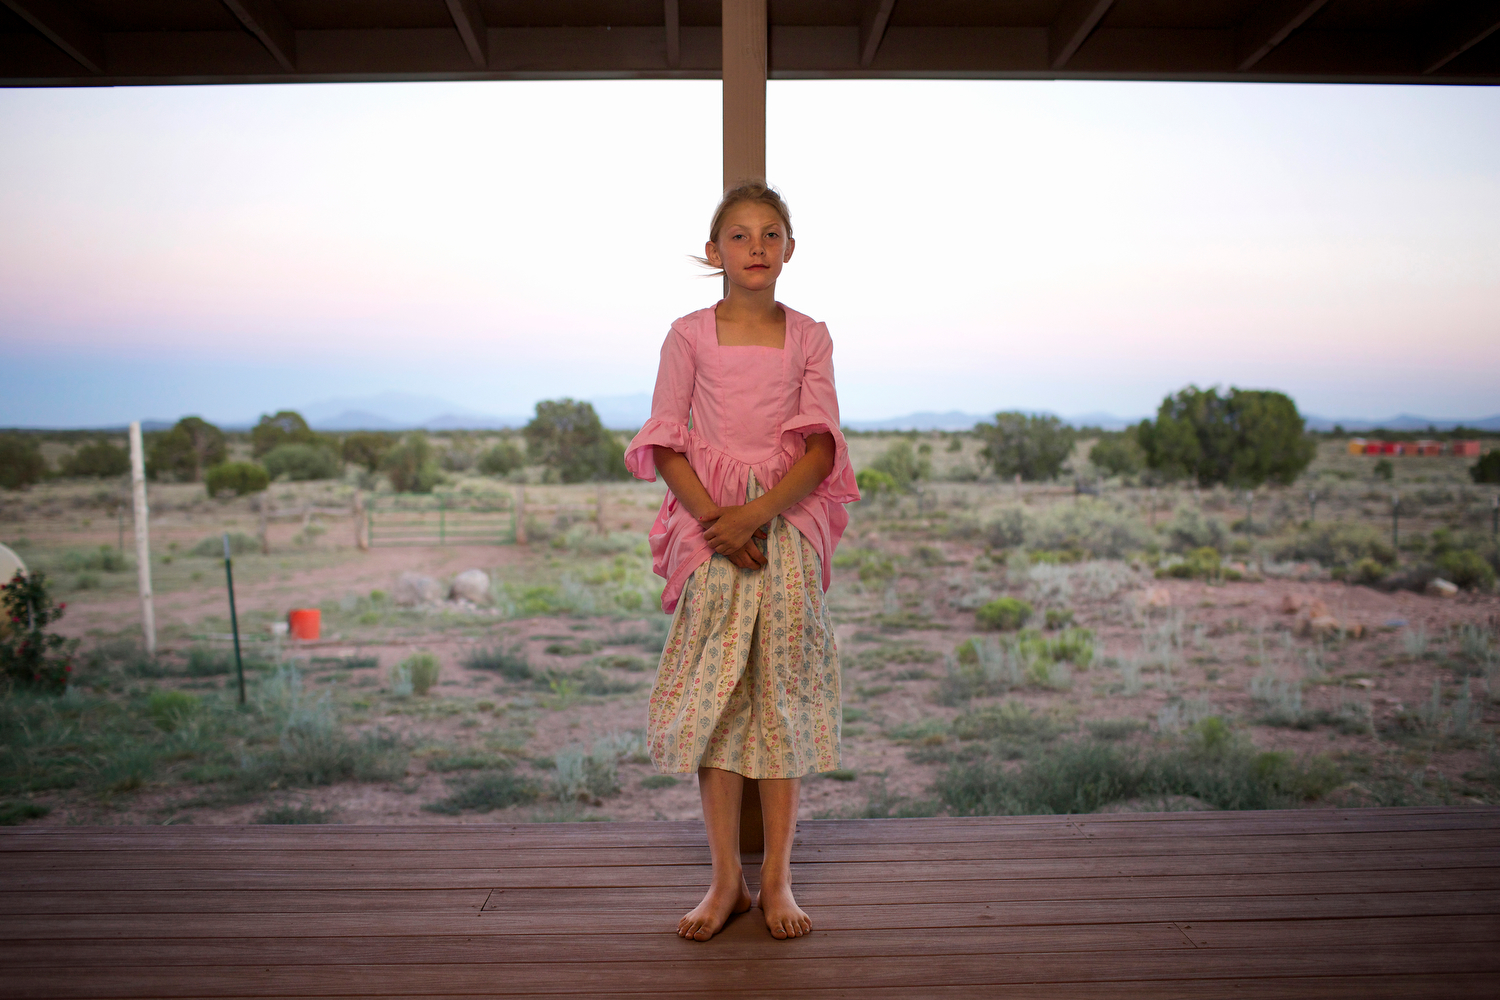 Shayla Rodgers, 10, Grand Canyon Ranches, Vallee AZ